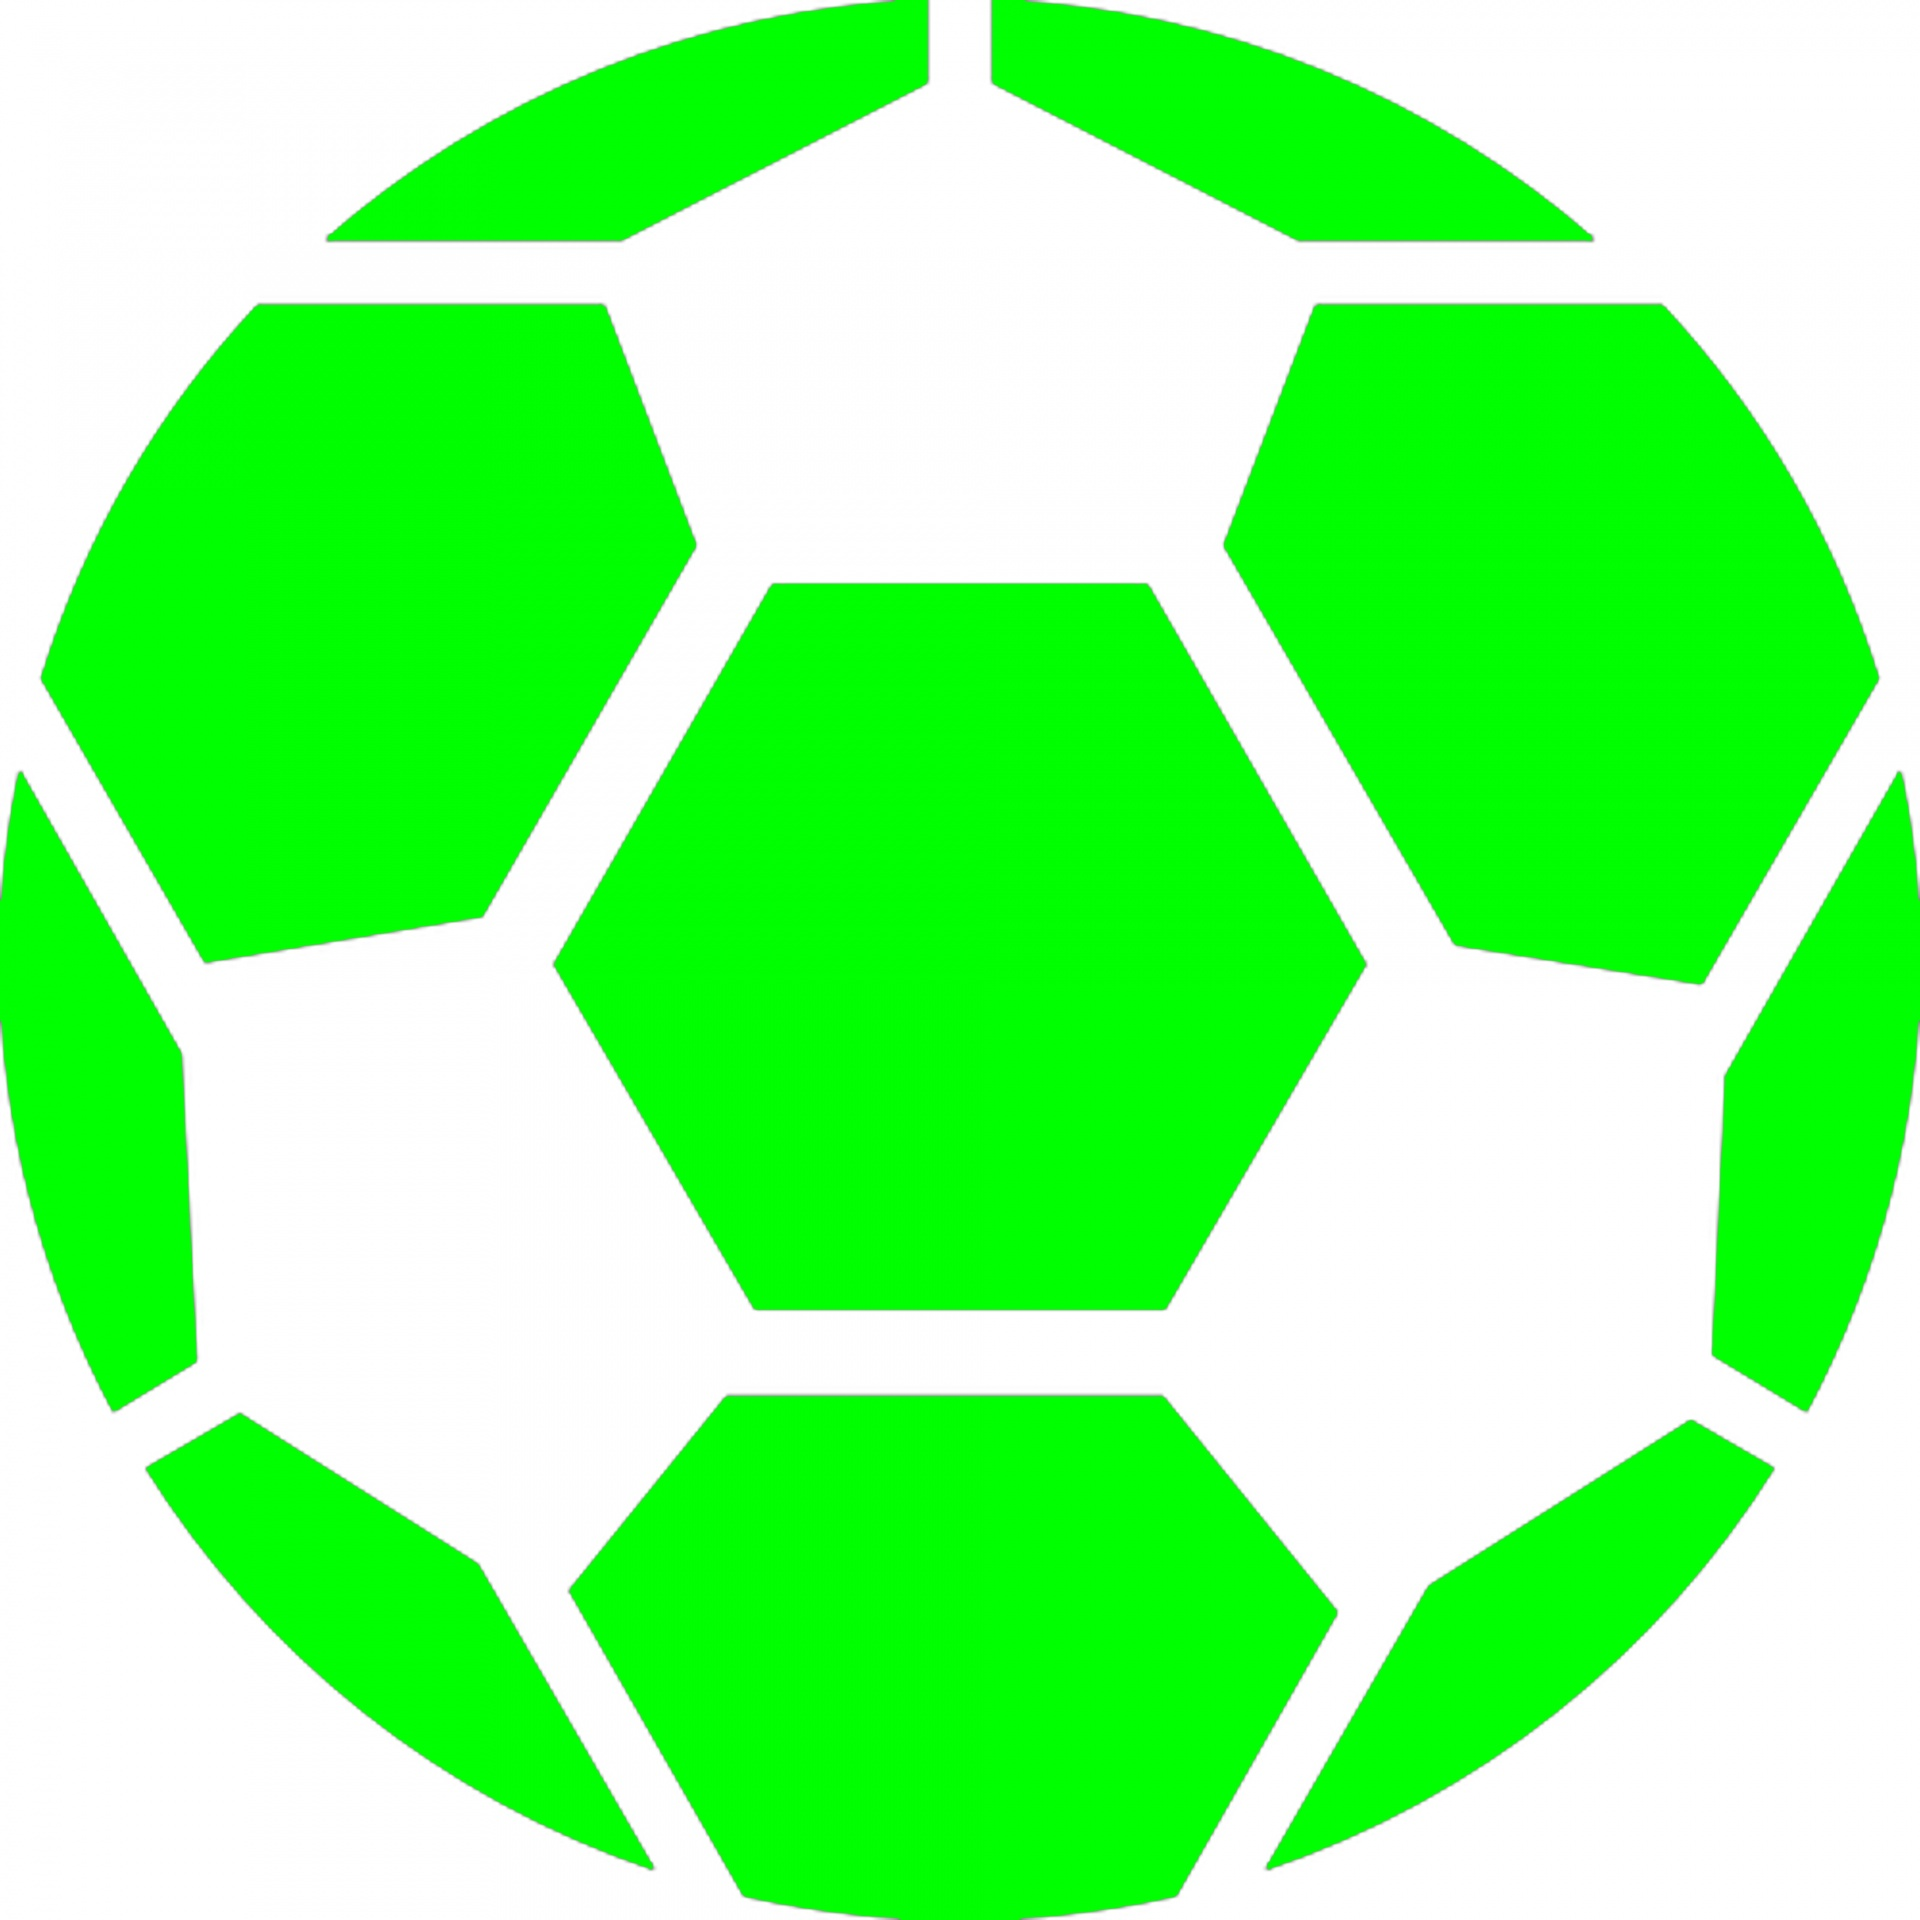 Soccer ball clipart green freeuse library Soccer Ball 3 Free Stock Photo - Public Domain Pictures freeuse library